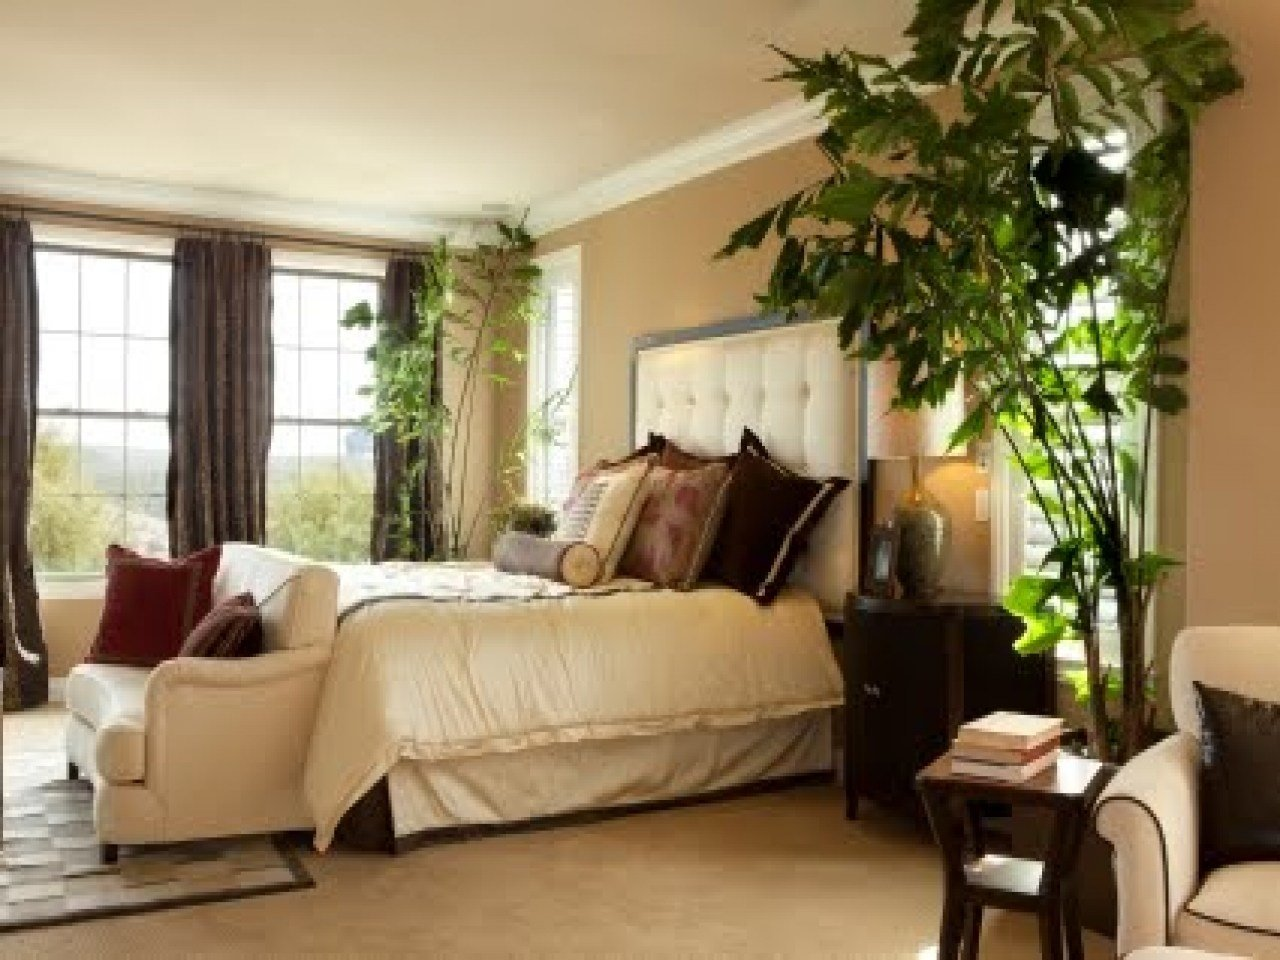 Best Pictures In Bedroom Feng Shui Bedroom Plants Feng Shui With Pictures